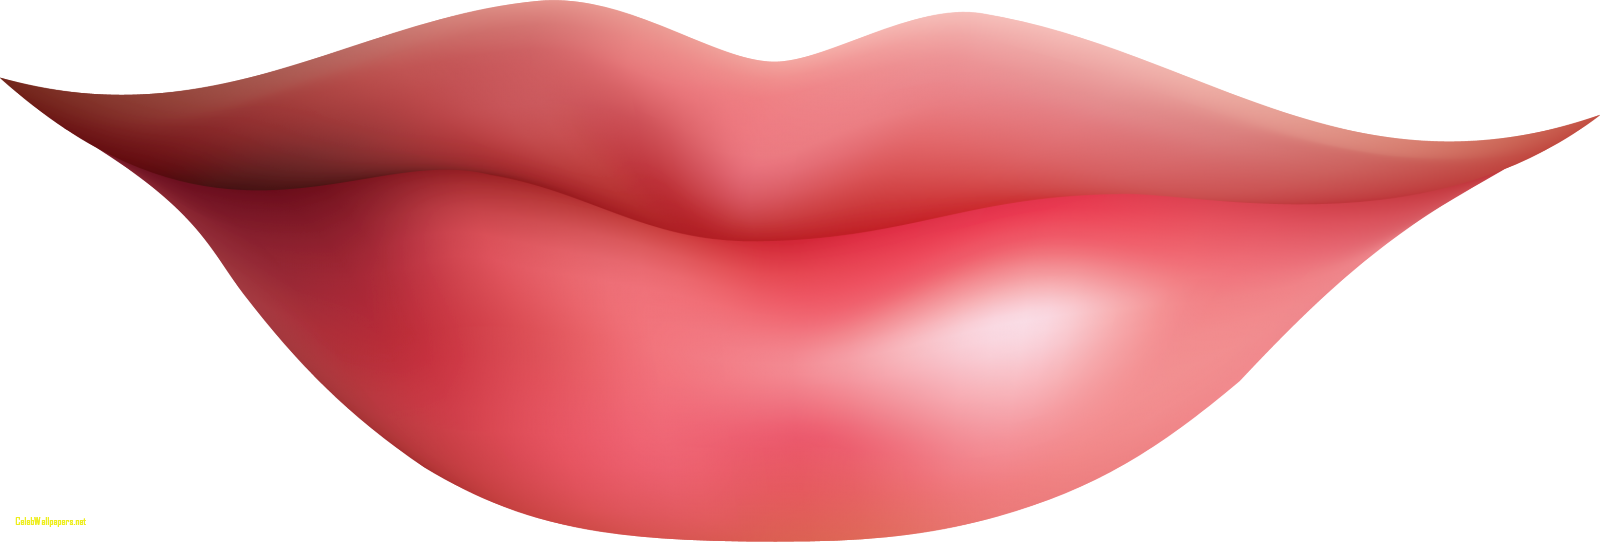 Lip clipart. Of lips typegoodies